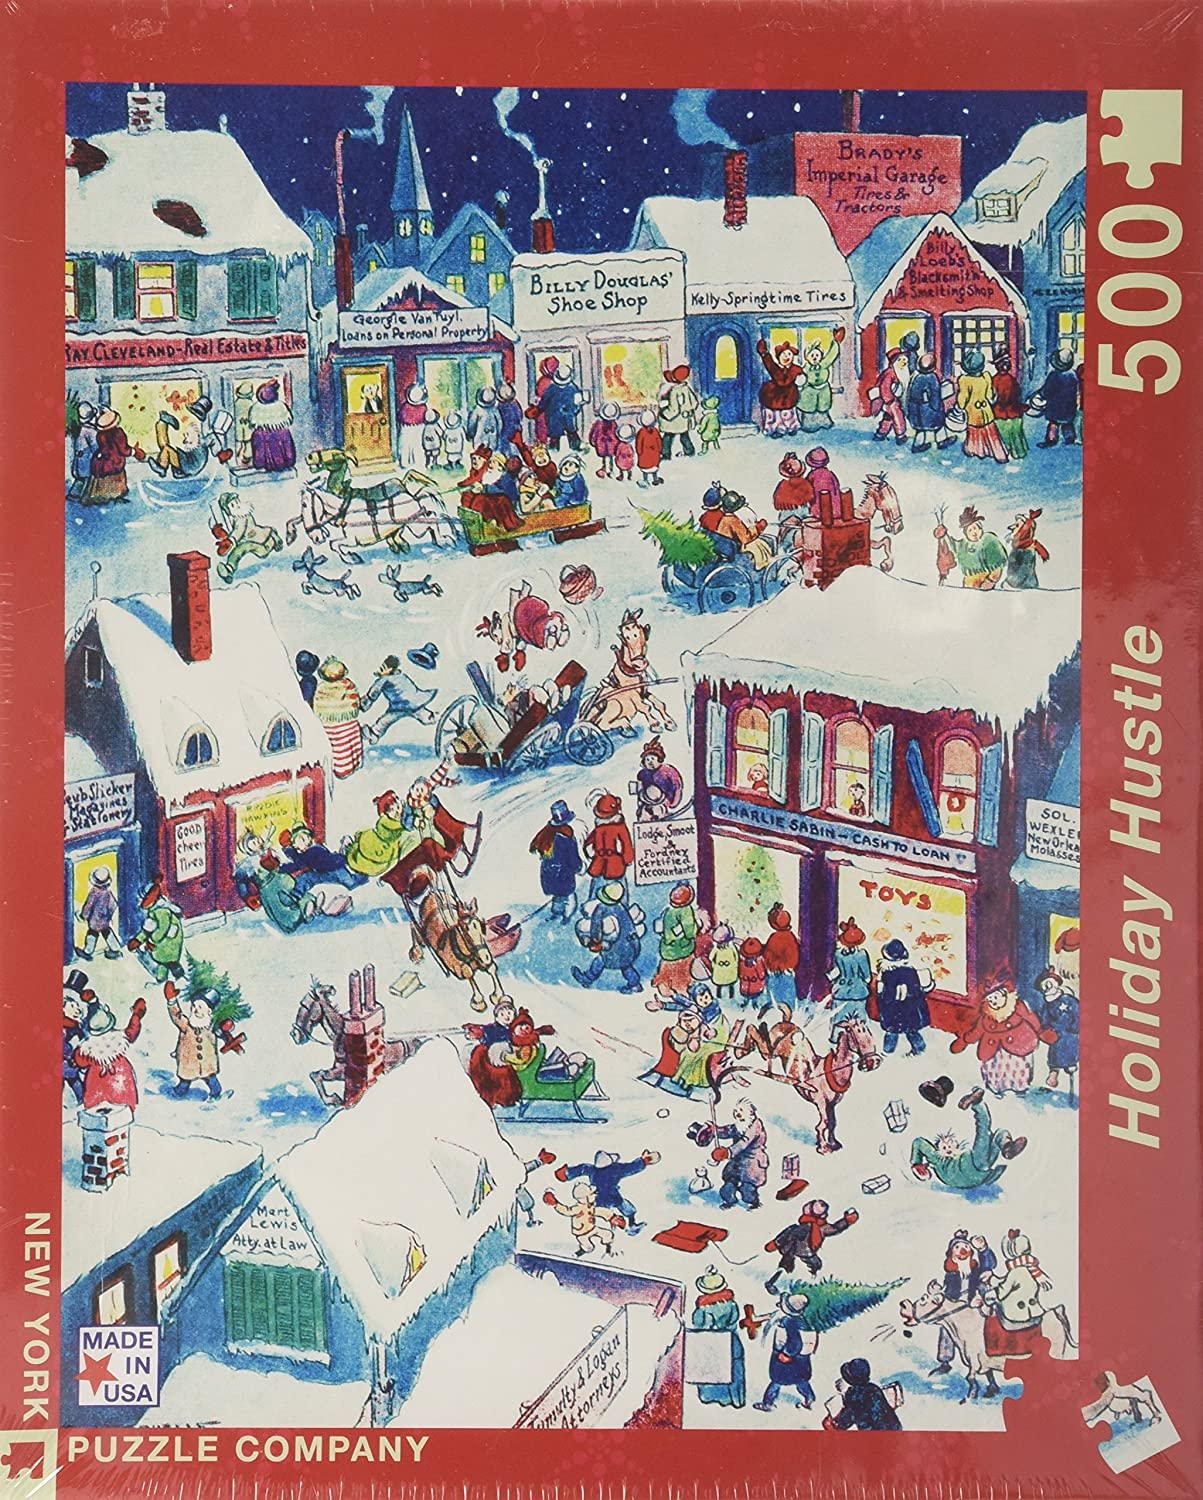 9f3a6f6eae0d Amazon.com: New York Puzzle Company - The Holiday Hustle - 500 Piece Jigsaw  Puzzle: New York Puzzle Co.: Toys & Games